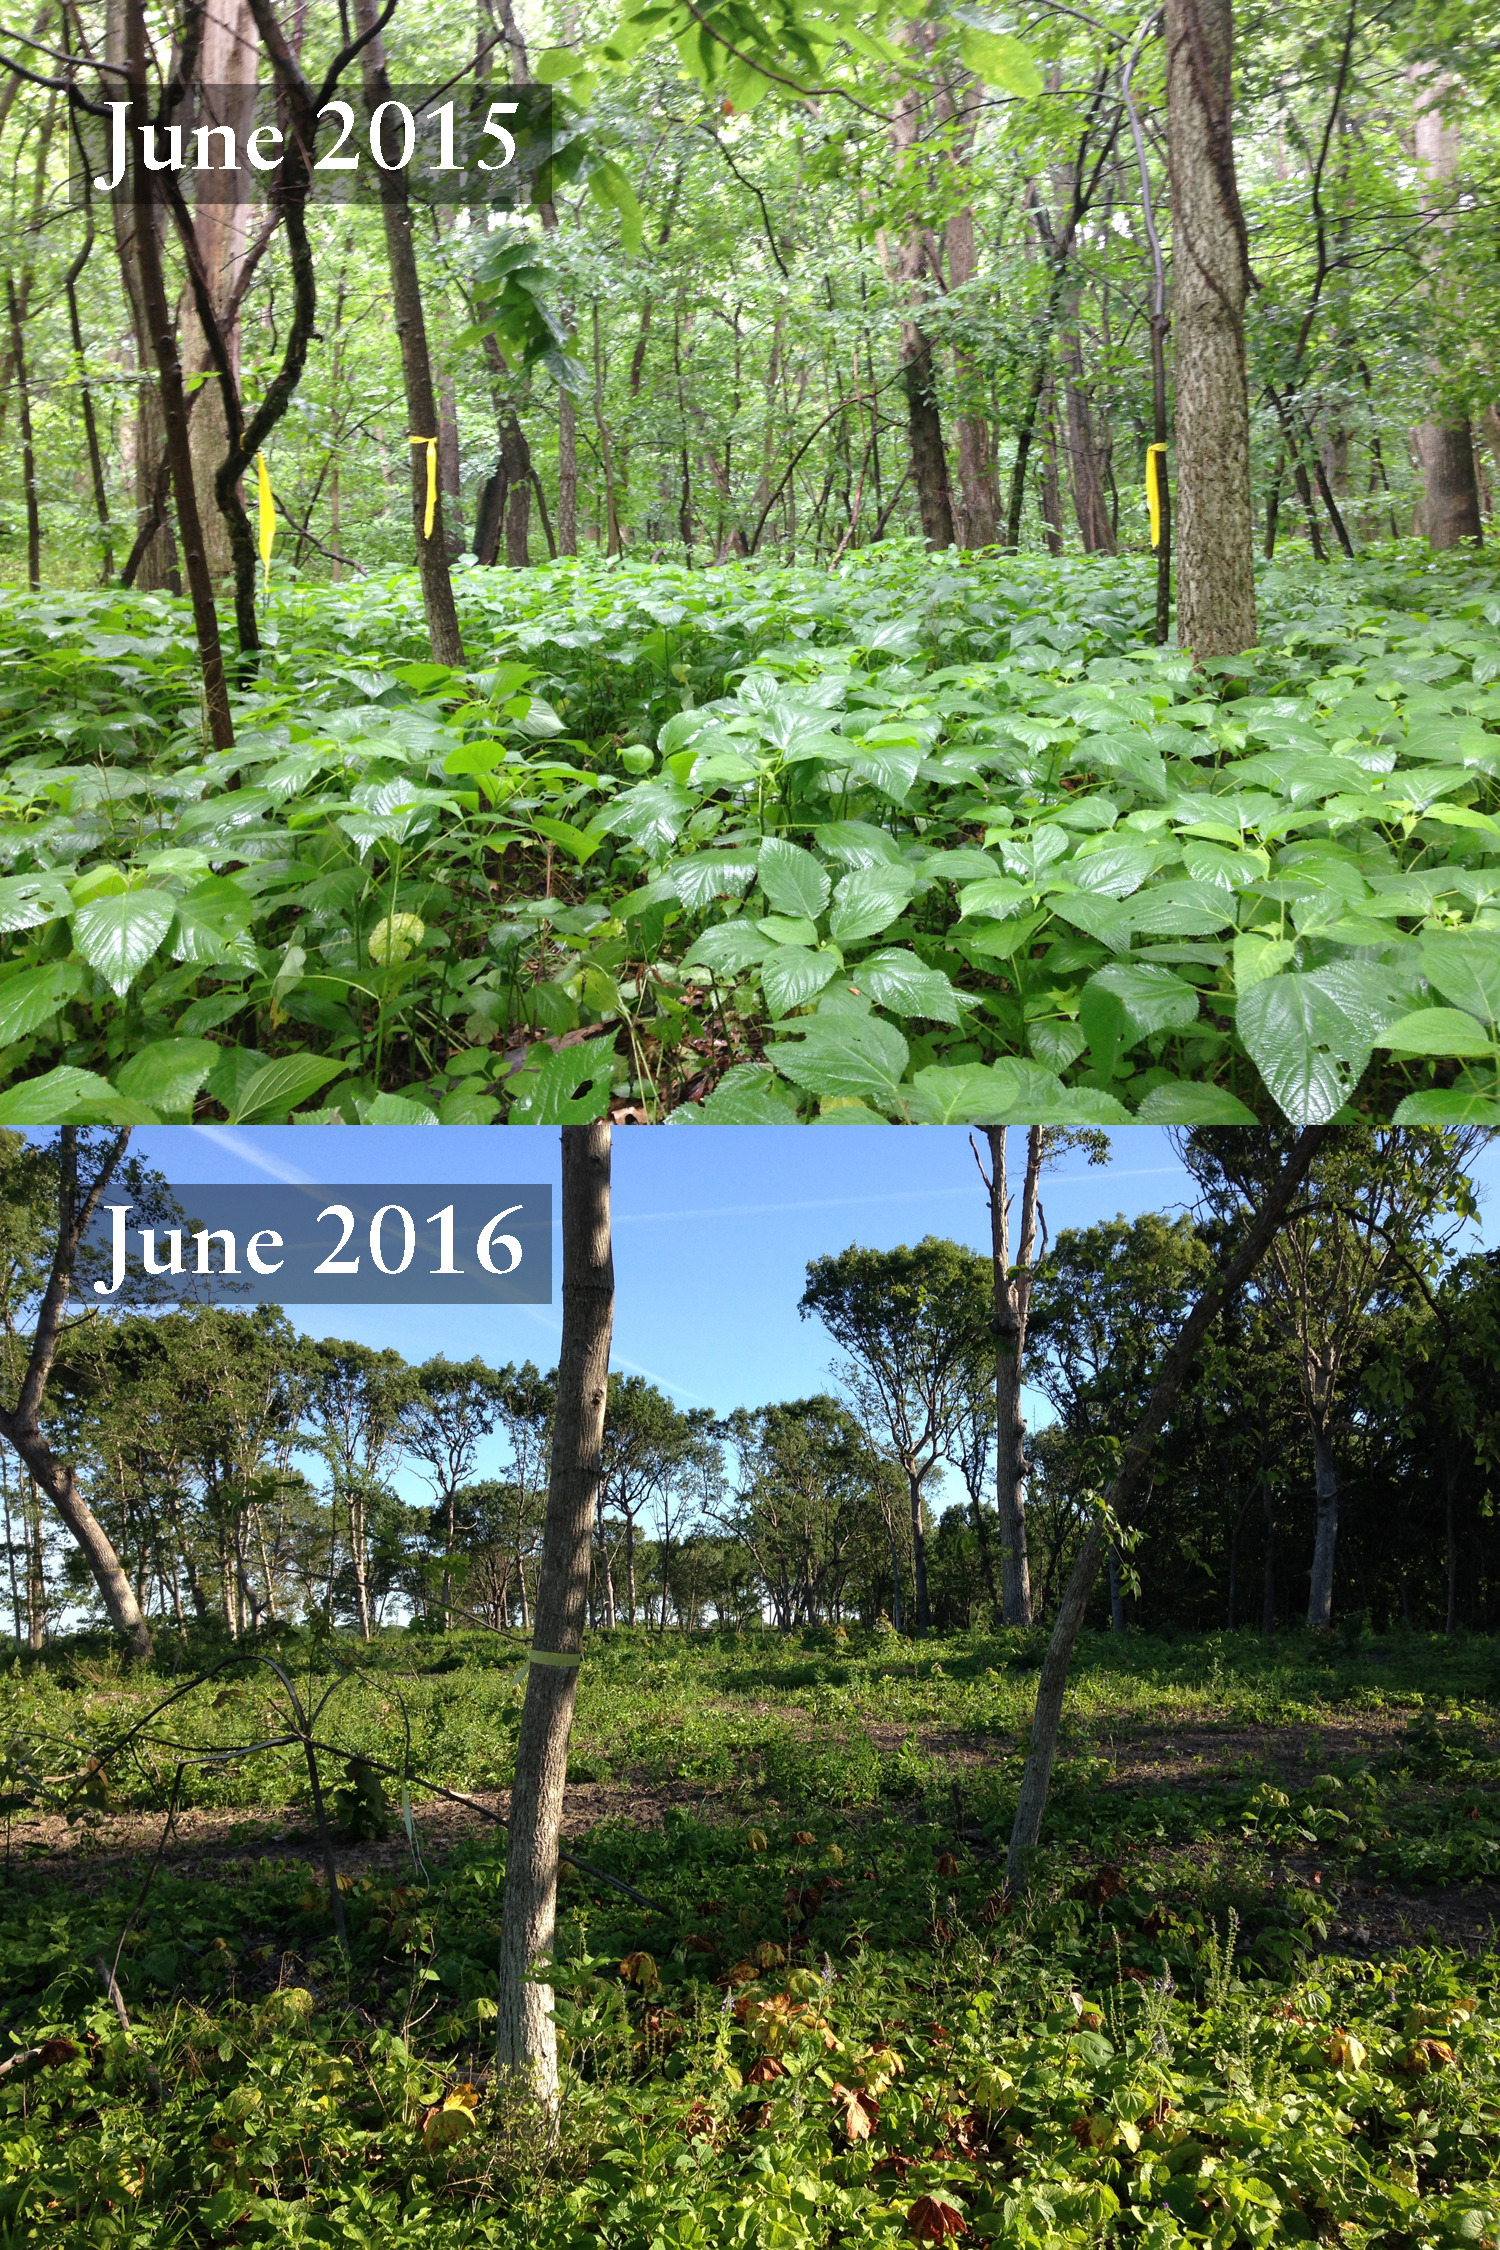 Bird surveying Point 7 in one of the savanna restoration zones, before restoration began in 2015 and after thinning of small and weedy trees was completed in 2016.